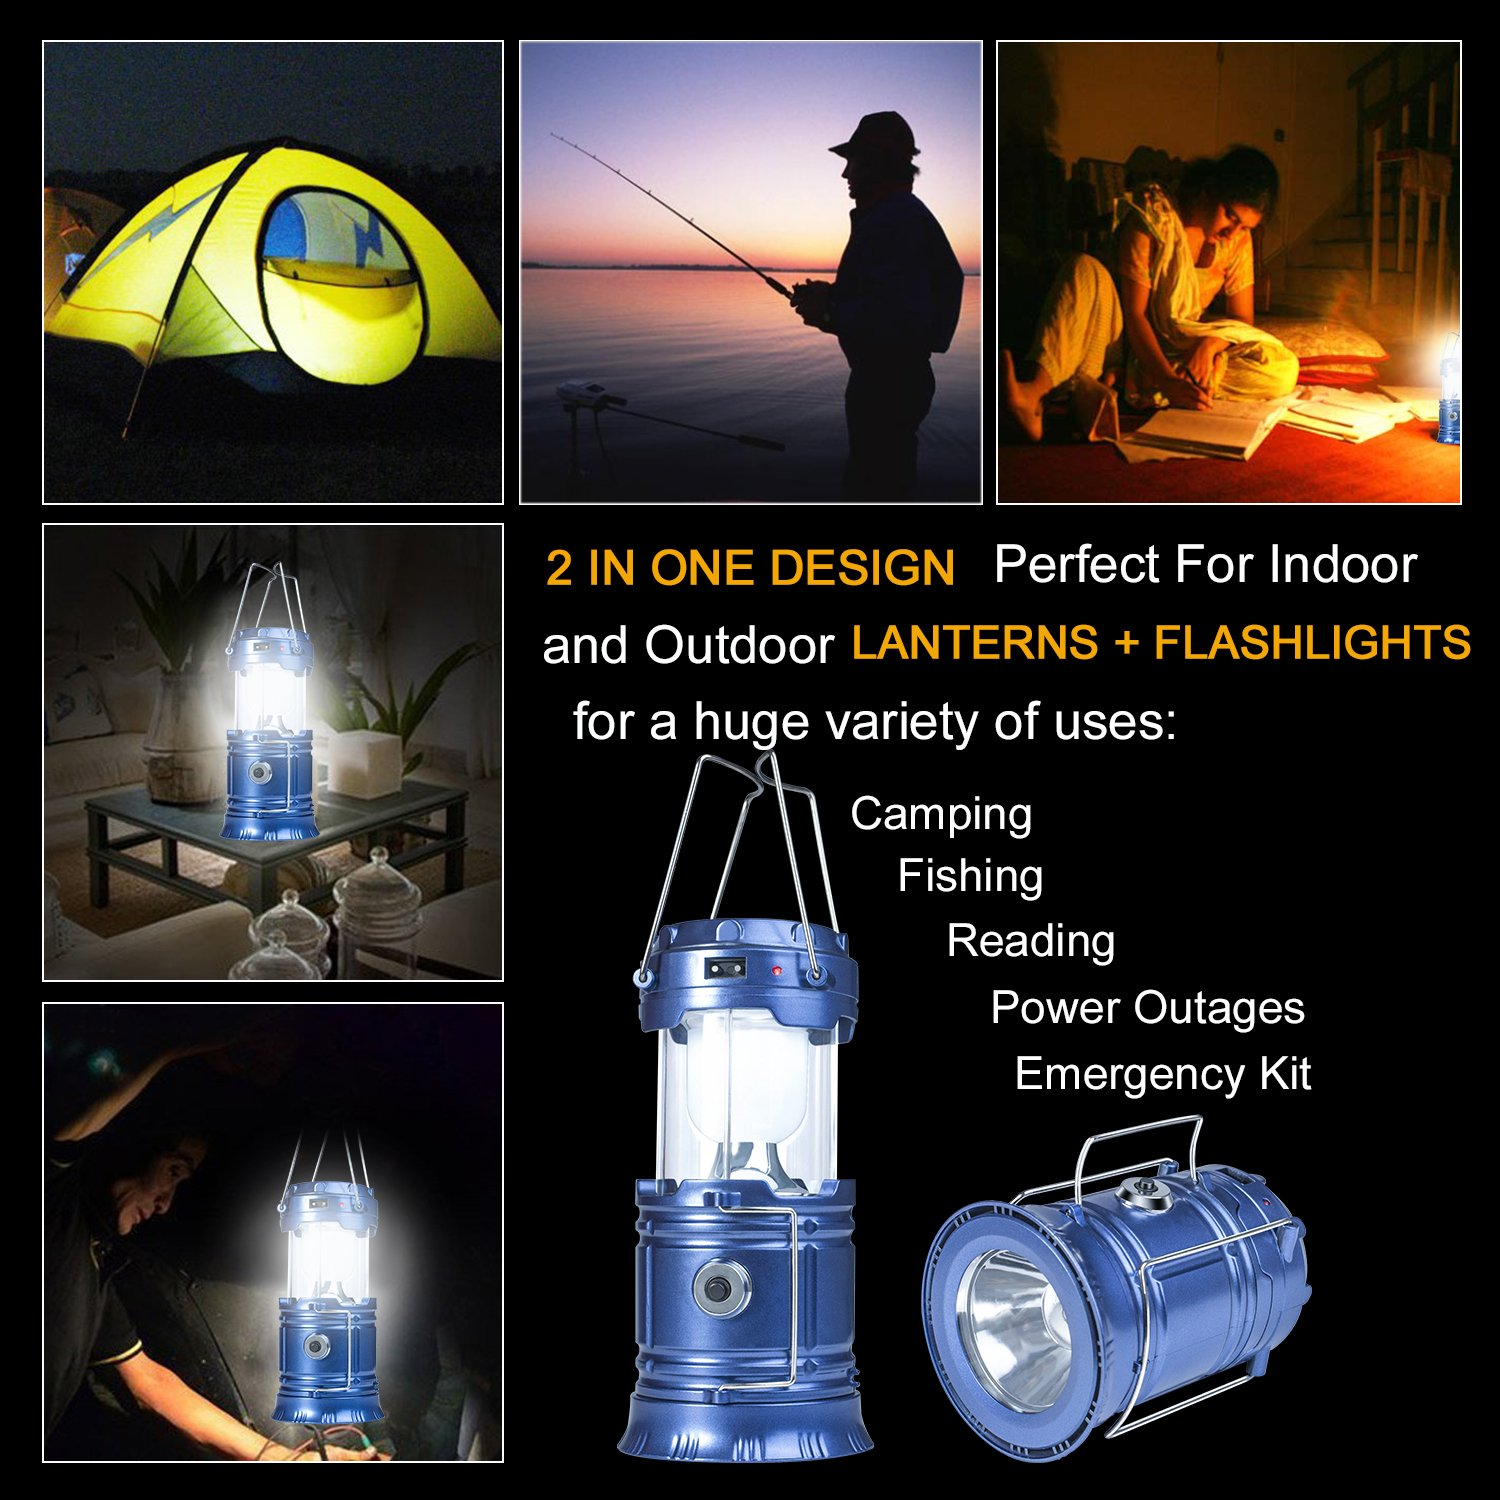 YIEASY Solar Camping Lanterns, 2 Pack Led Rechargeable Lantern Flashlight for Hurricane, Power Outages, Emergency, Collapsible and Portable (Blue) by YIEASY (Image #7)